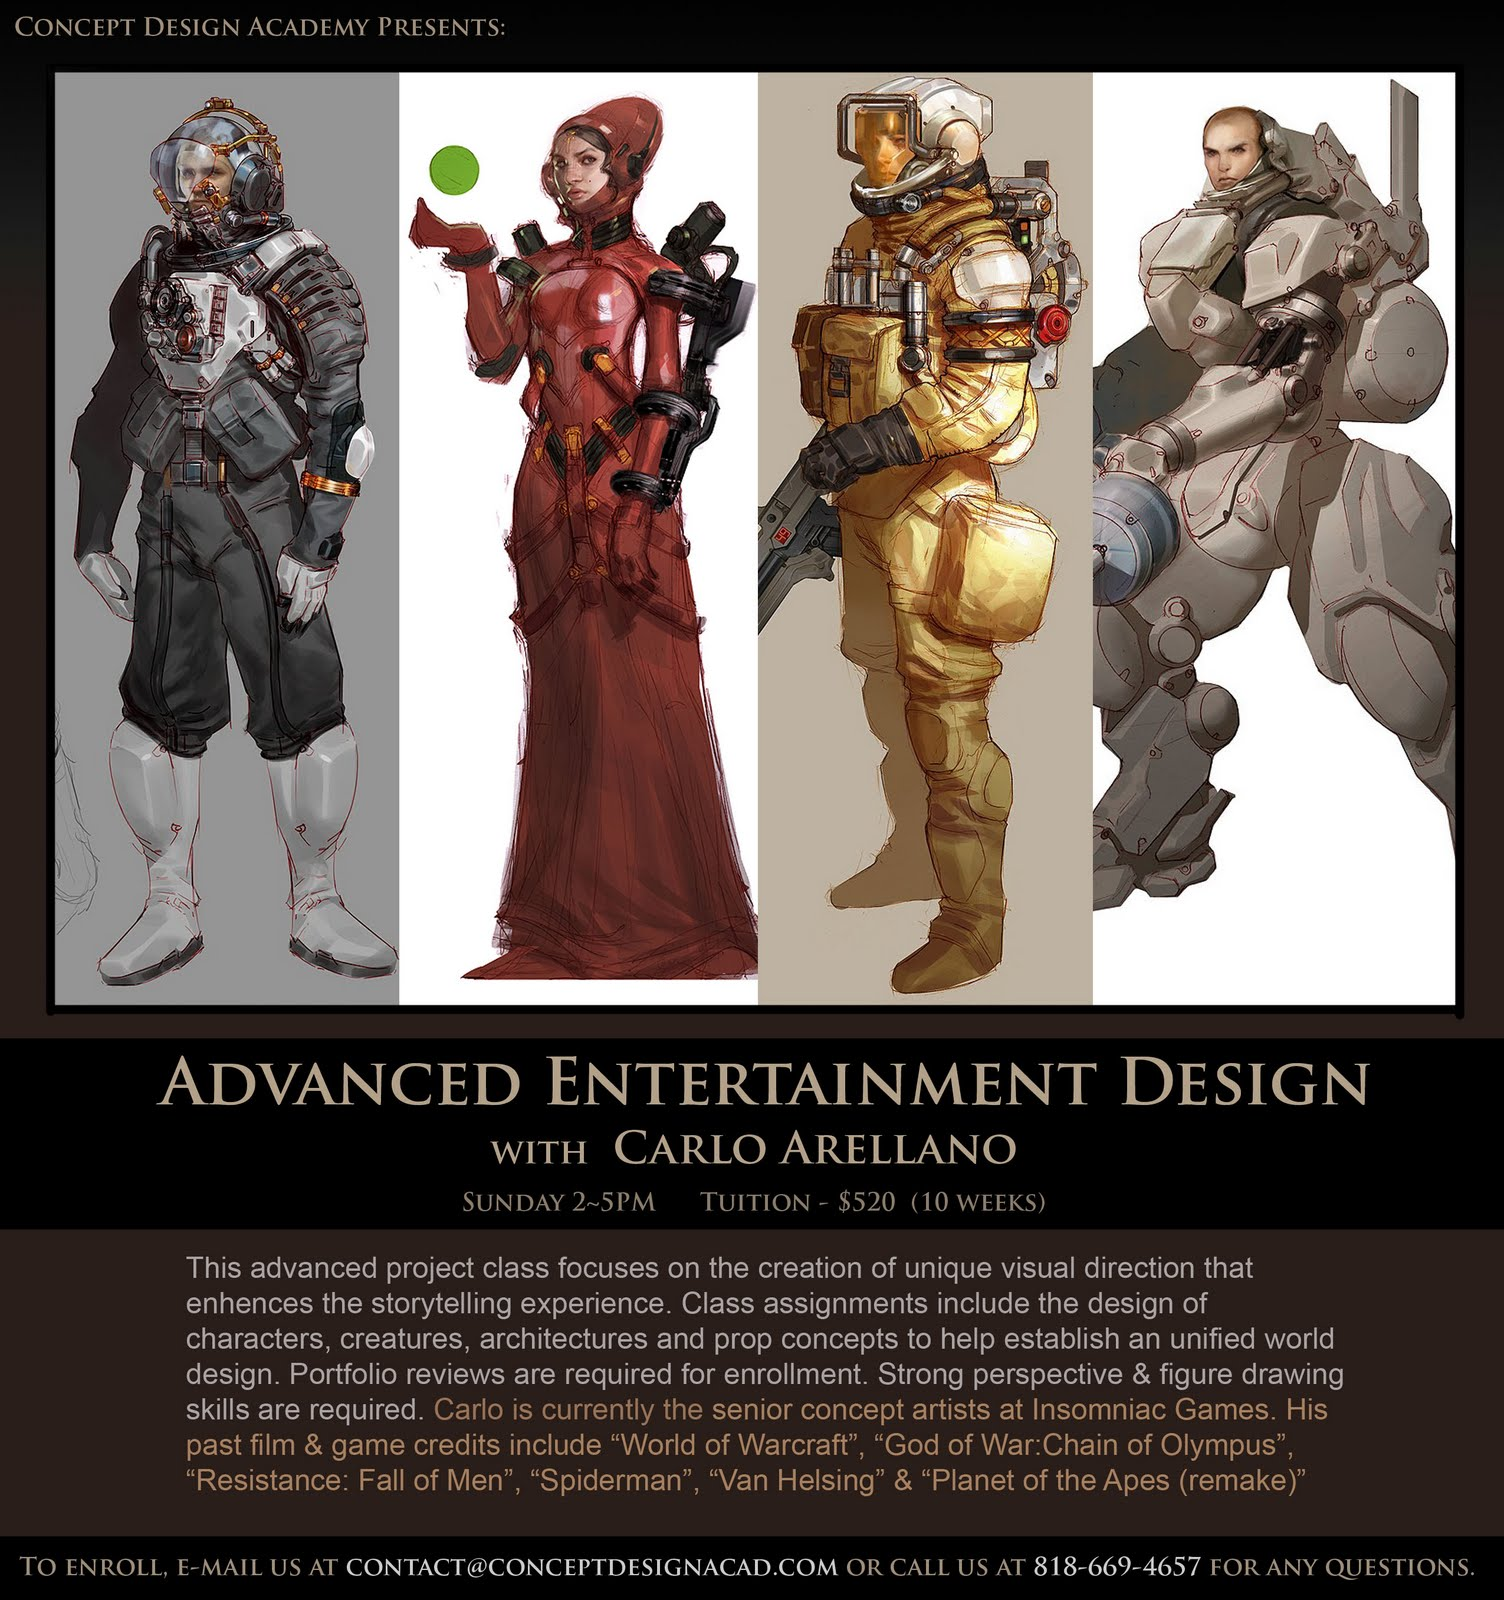 The Art Of Character Design With David Colman Volume I : Concept design academy fall enrollment status